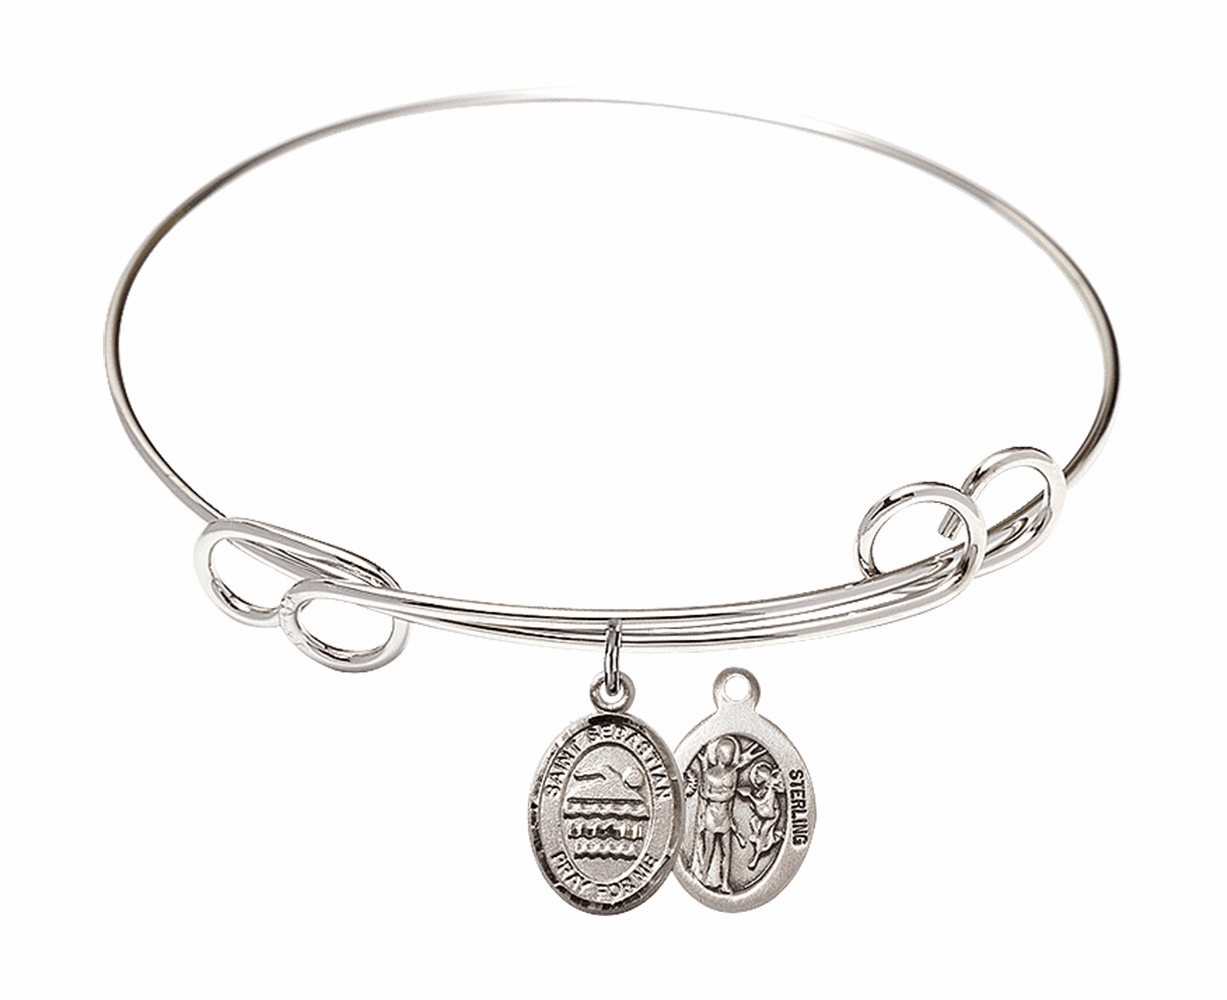 Round Loop St Sebastian Swimming Bangle Charm Bracelet by Bliss